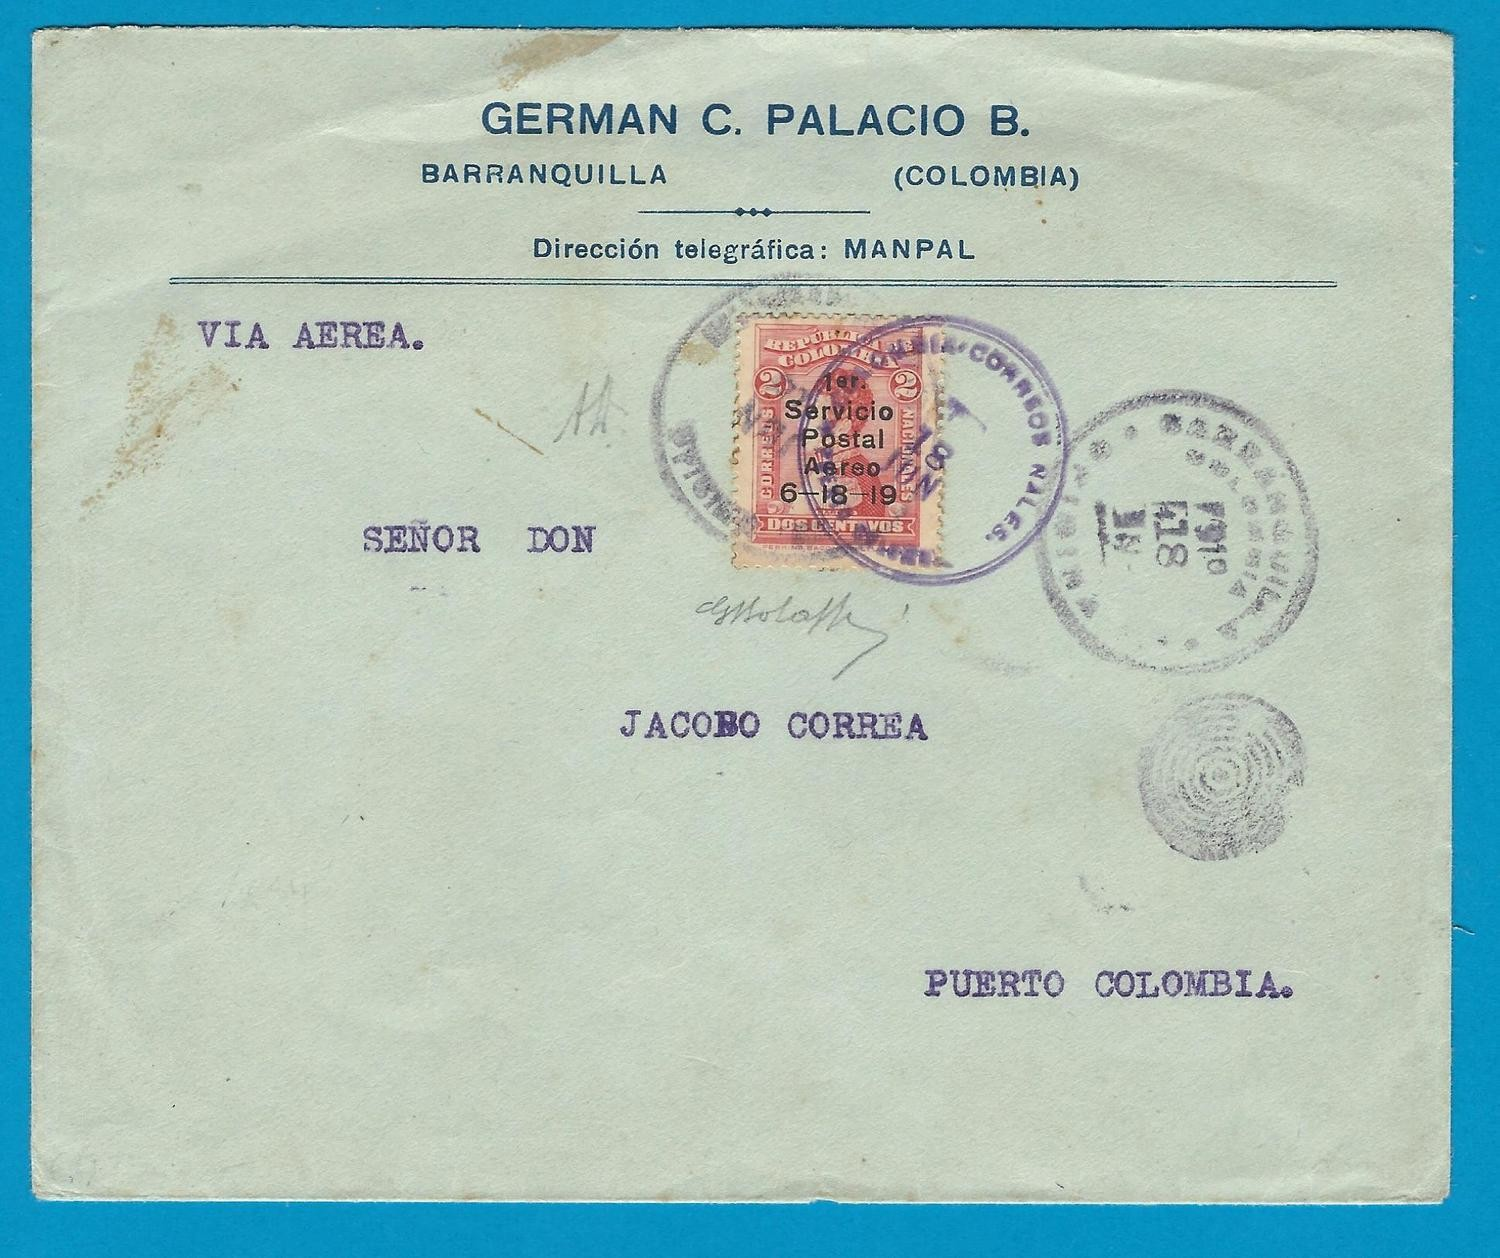 COLOMBIA airmail cover 1919 Barranquilla to Puerto Colombia